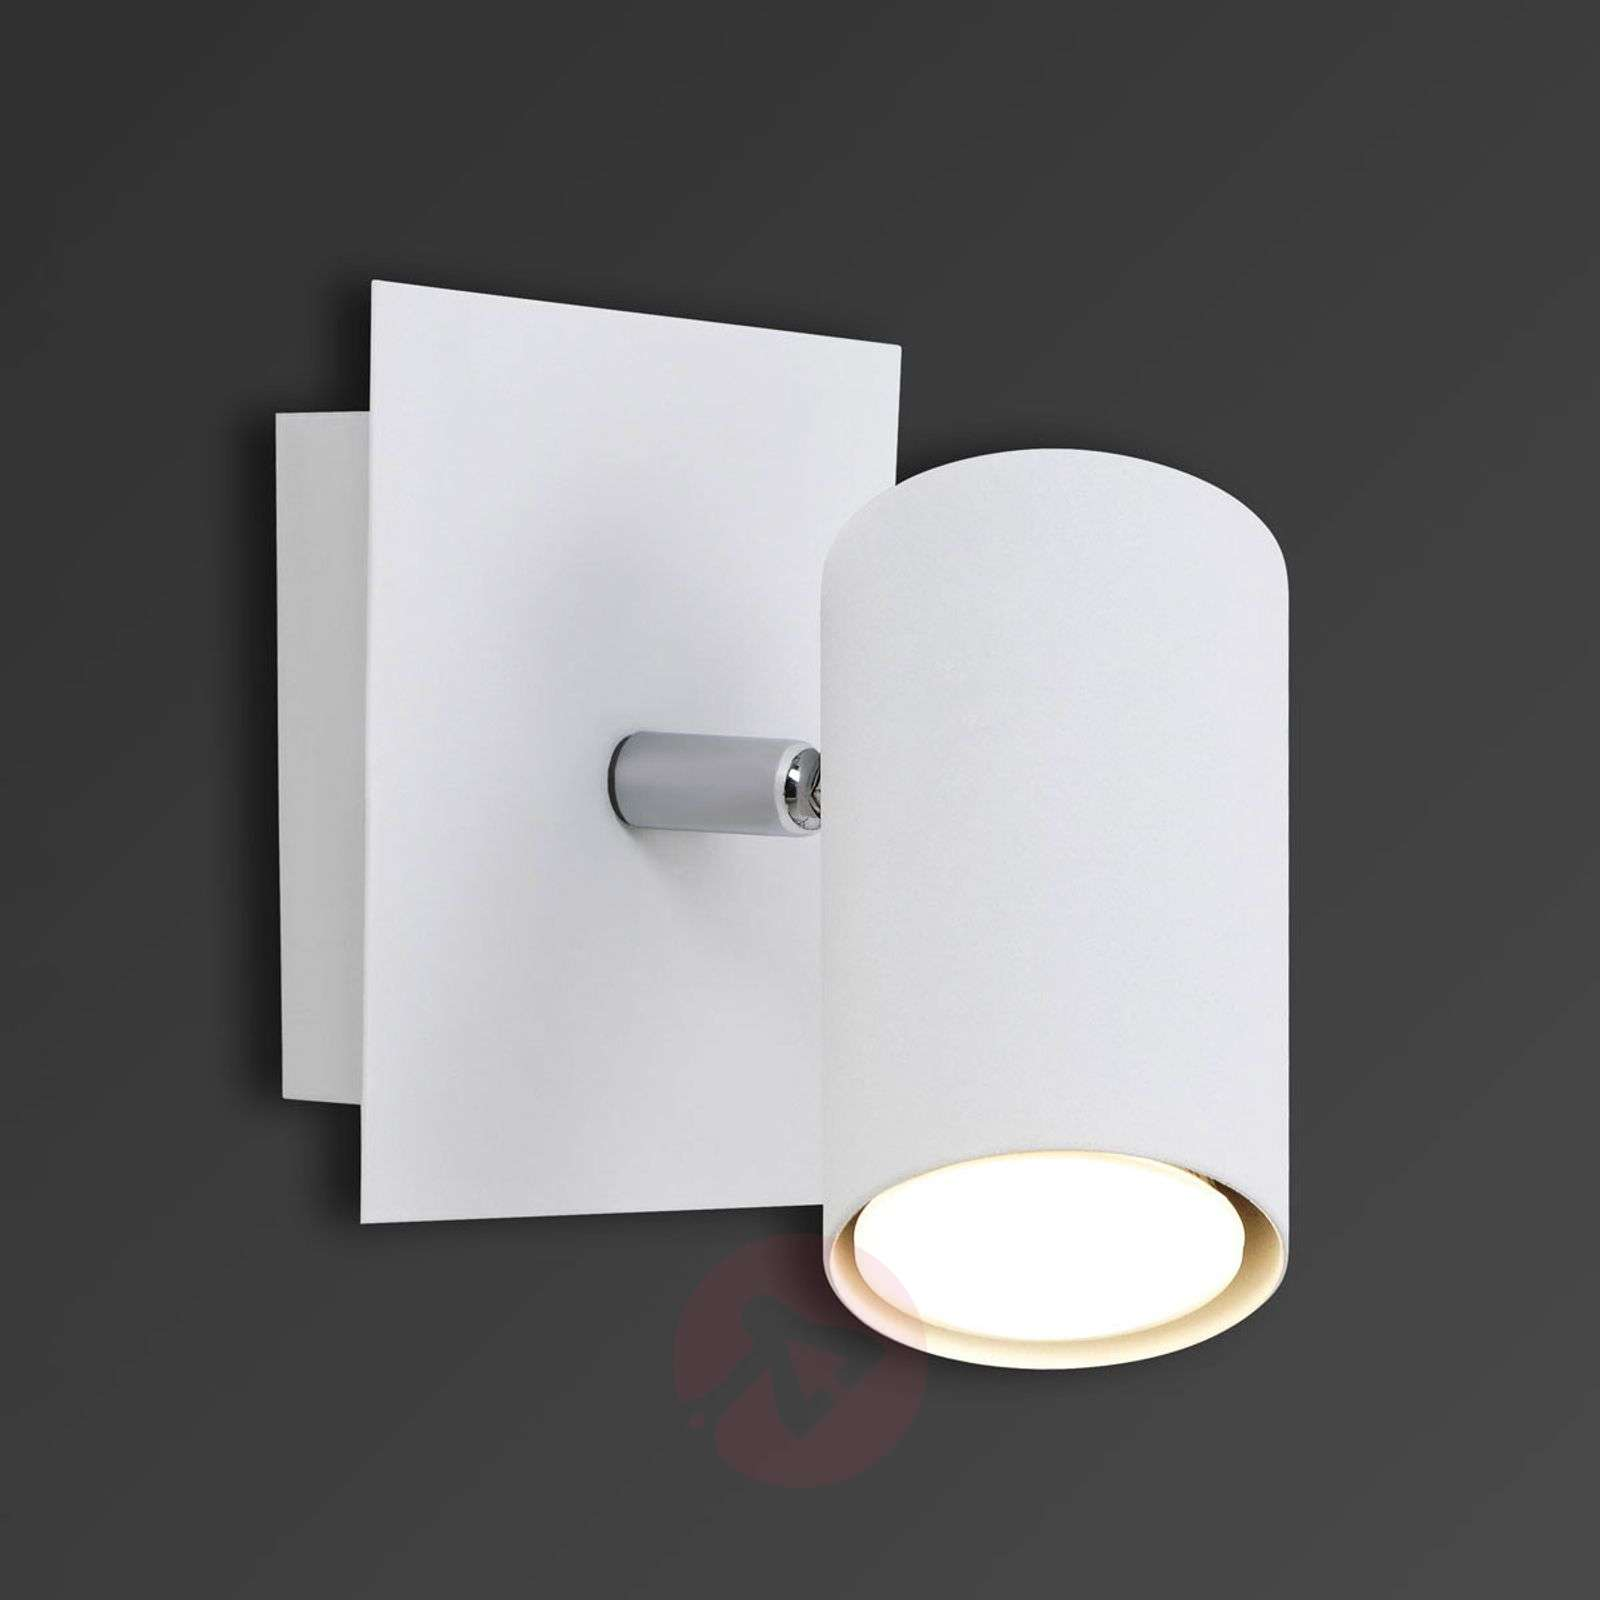 Mia single-bulb halogen wall spotlight-9005044-01